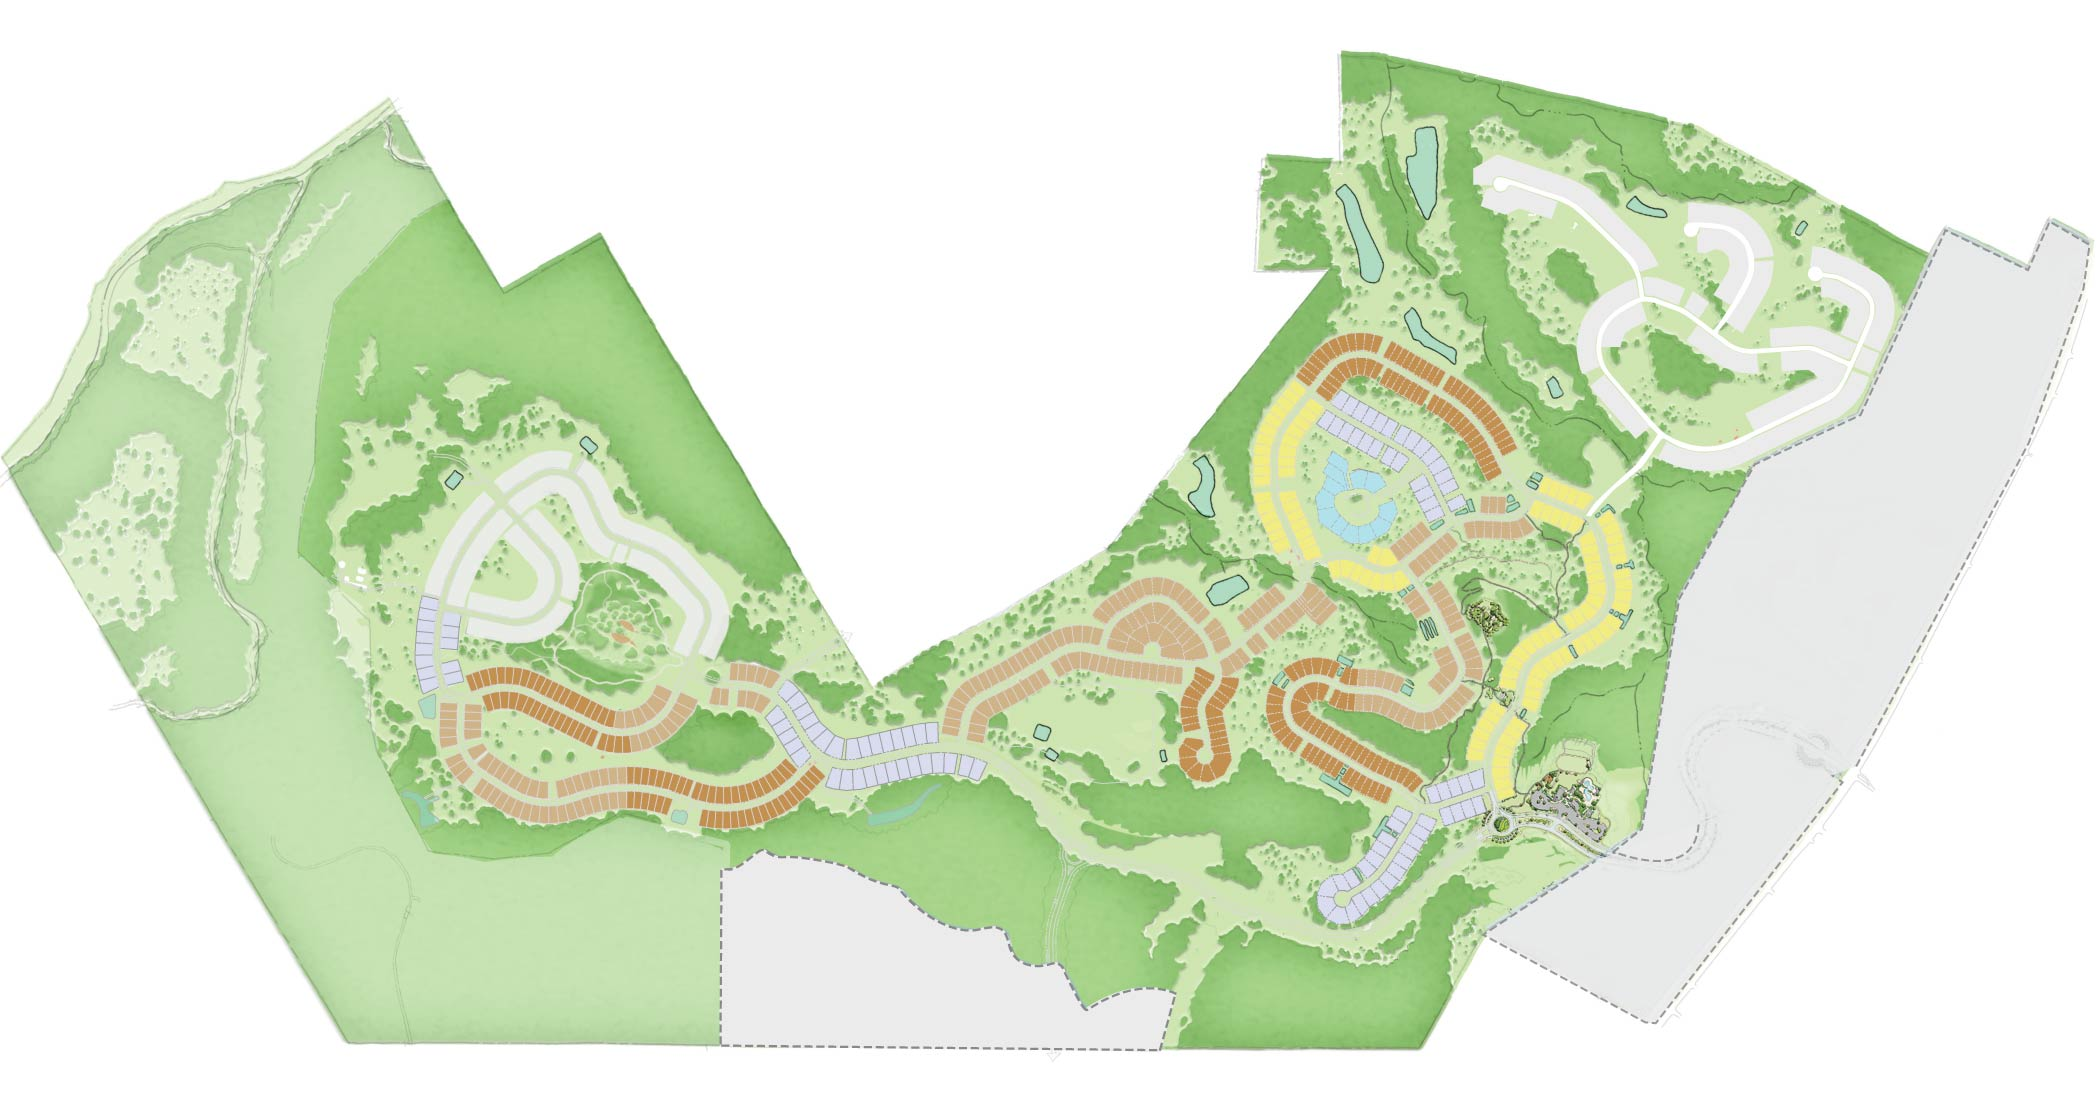 Headwaters site plan